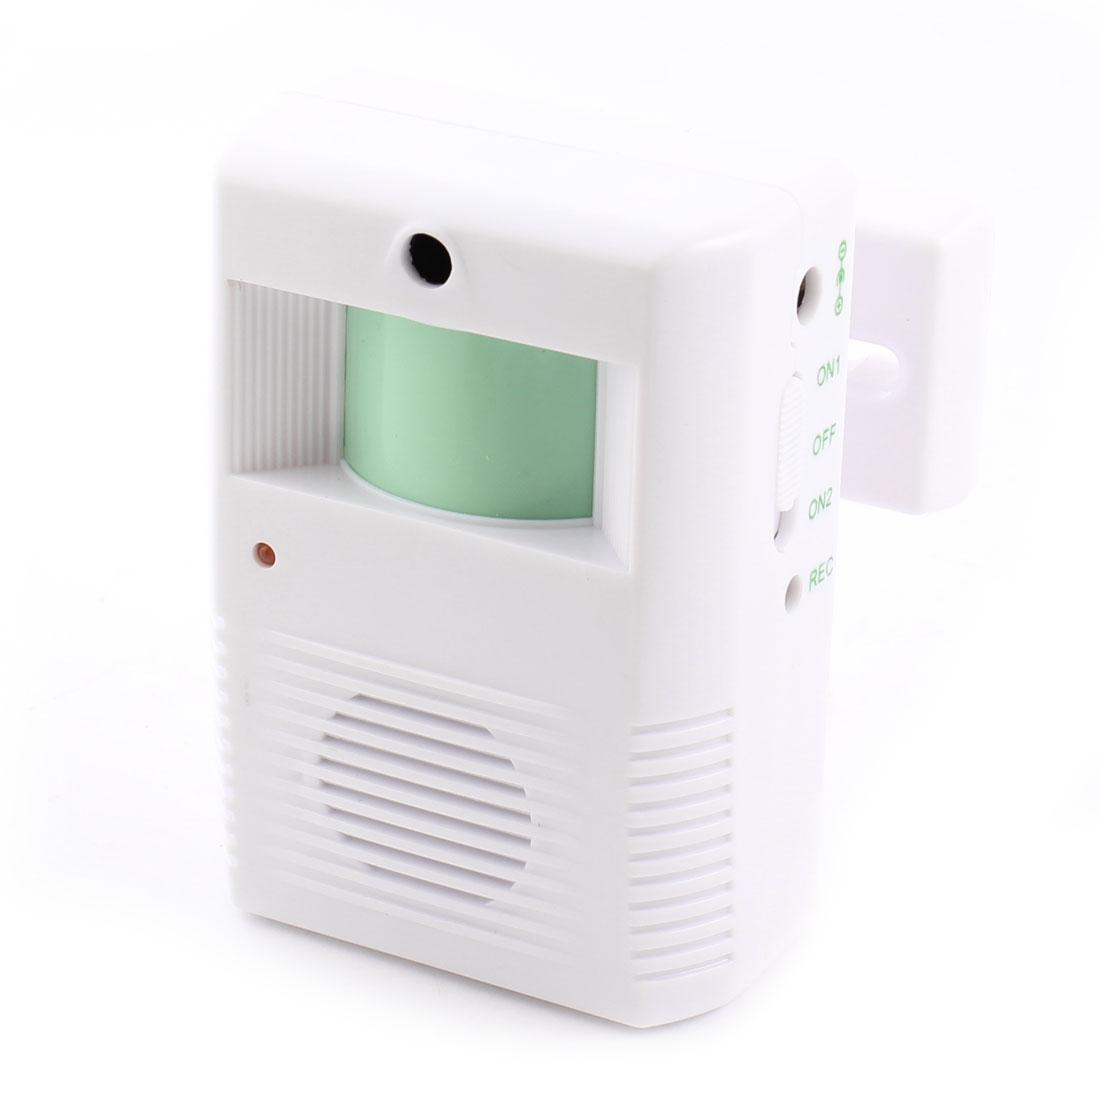 White Plastic Light Control Electronic Welcome Guest Saluting Doorbell Chime